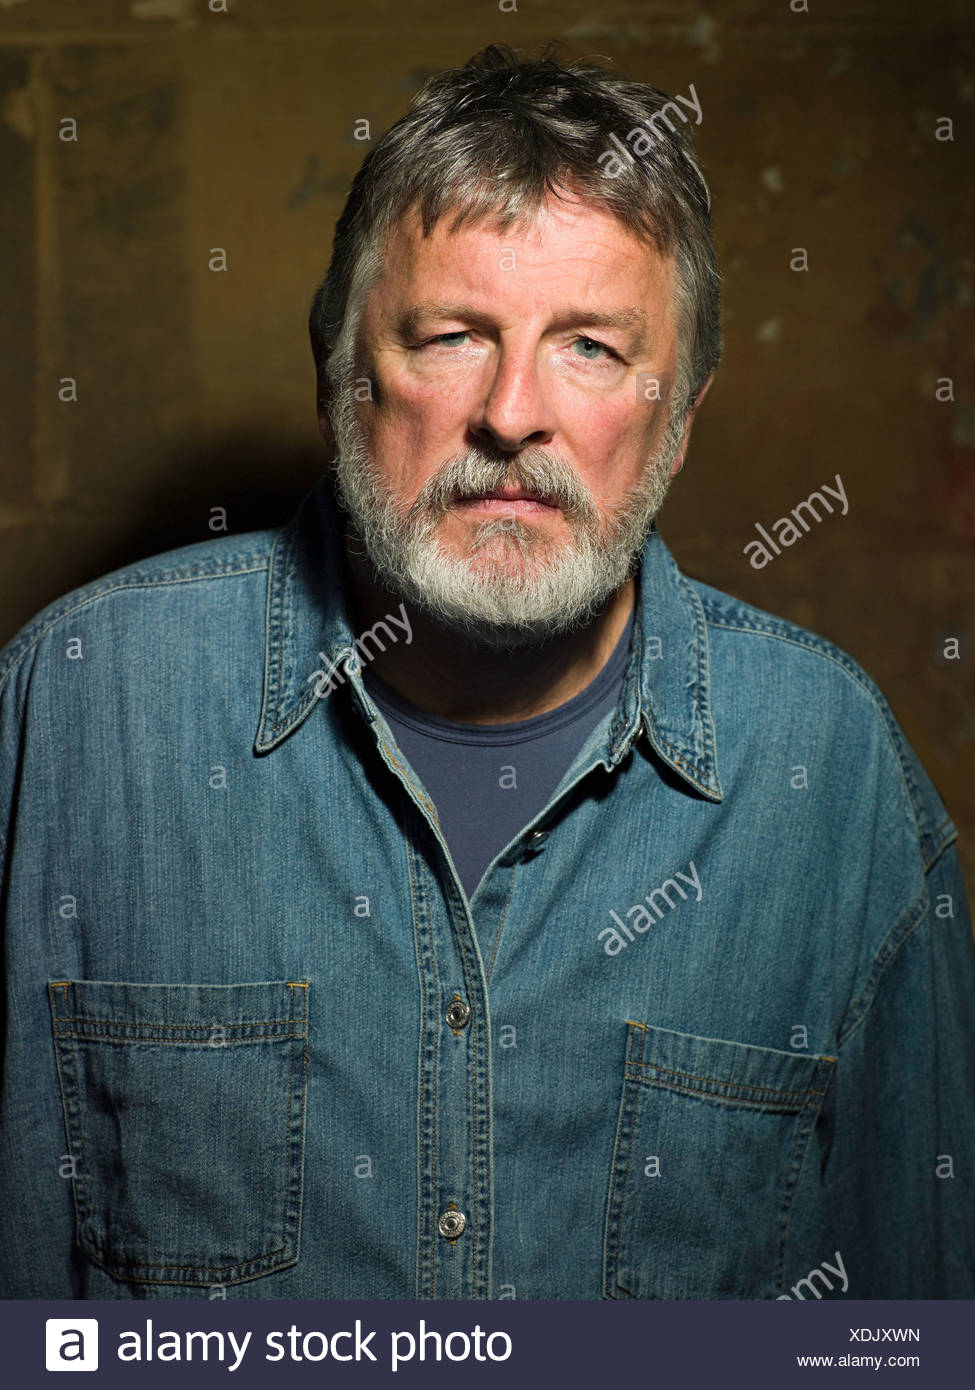 Mature man wearing a denim shirt - Stock Image